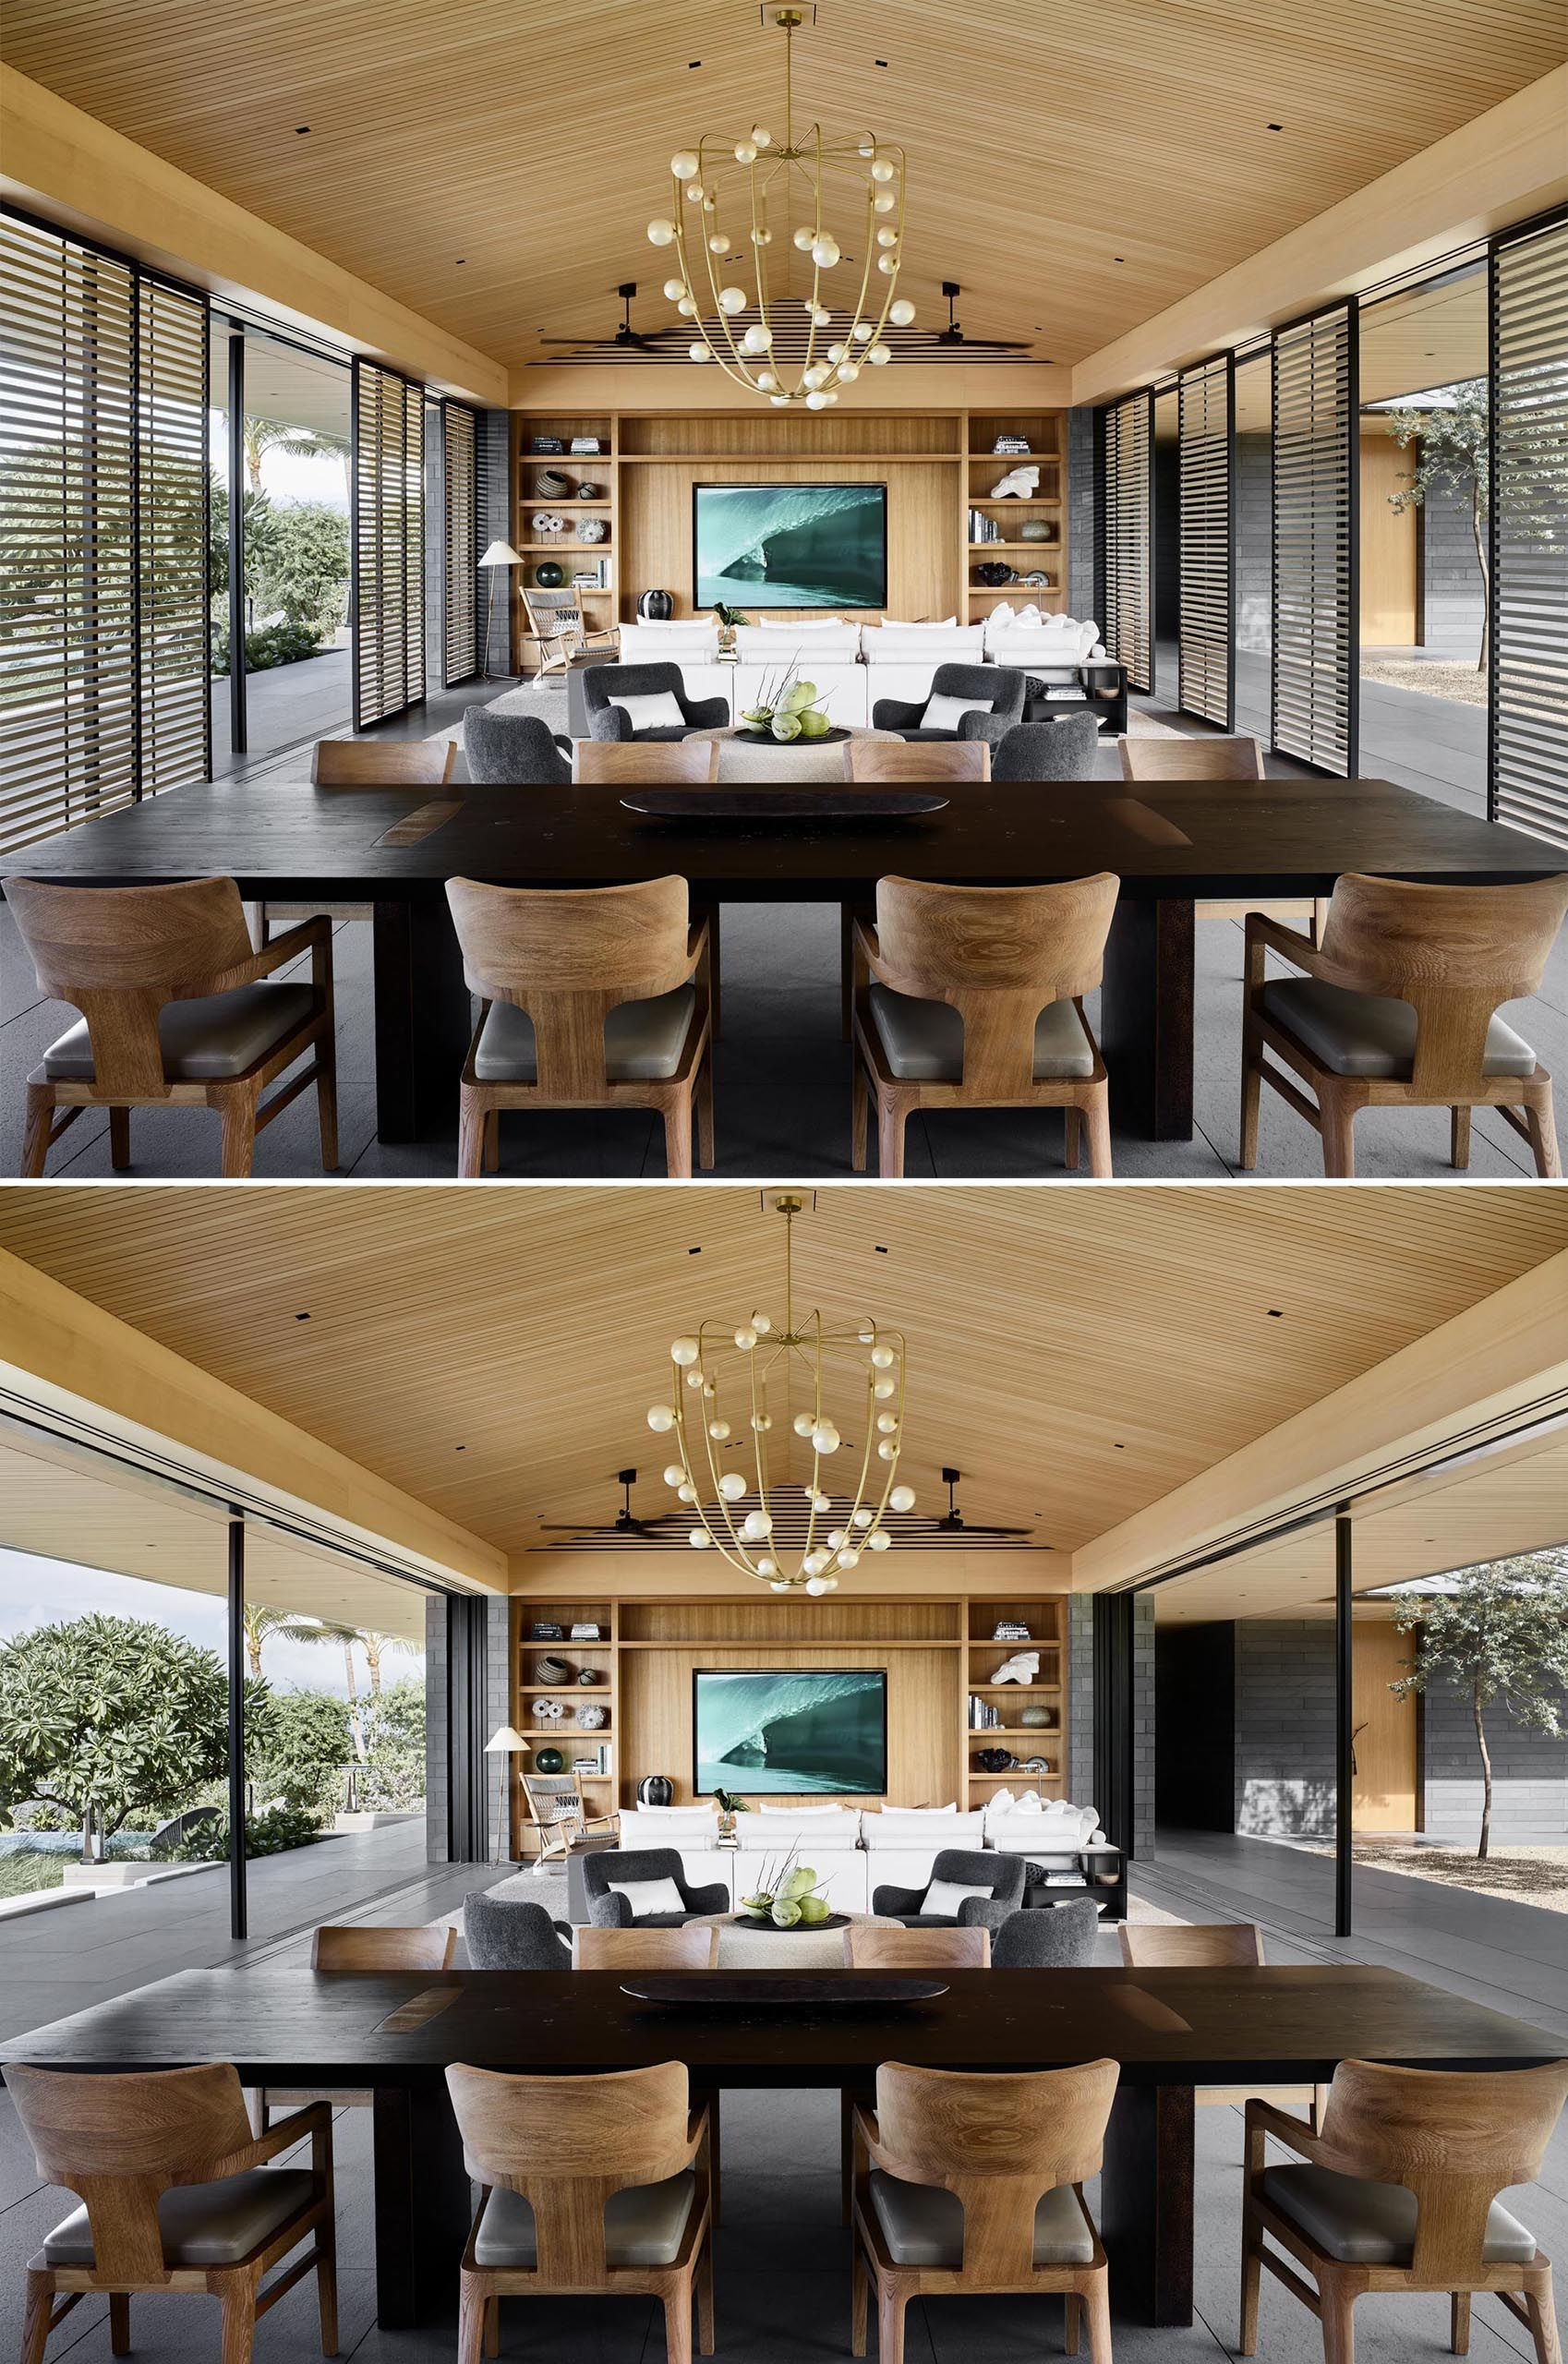 The Walls Of This Home Surrounding The Living Room Kitchen And Dining Room Disappear To Enable Indoor Outdoor Living Indoor Outdoor Living Living Room Kitchen Separating Rooms Living dining room meaning